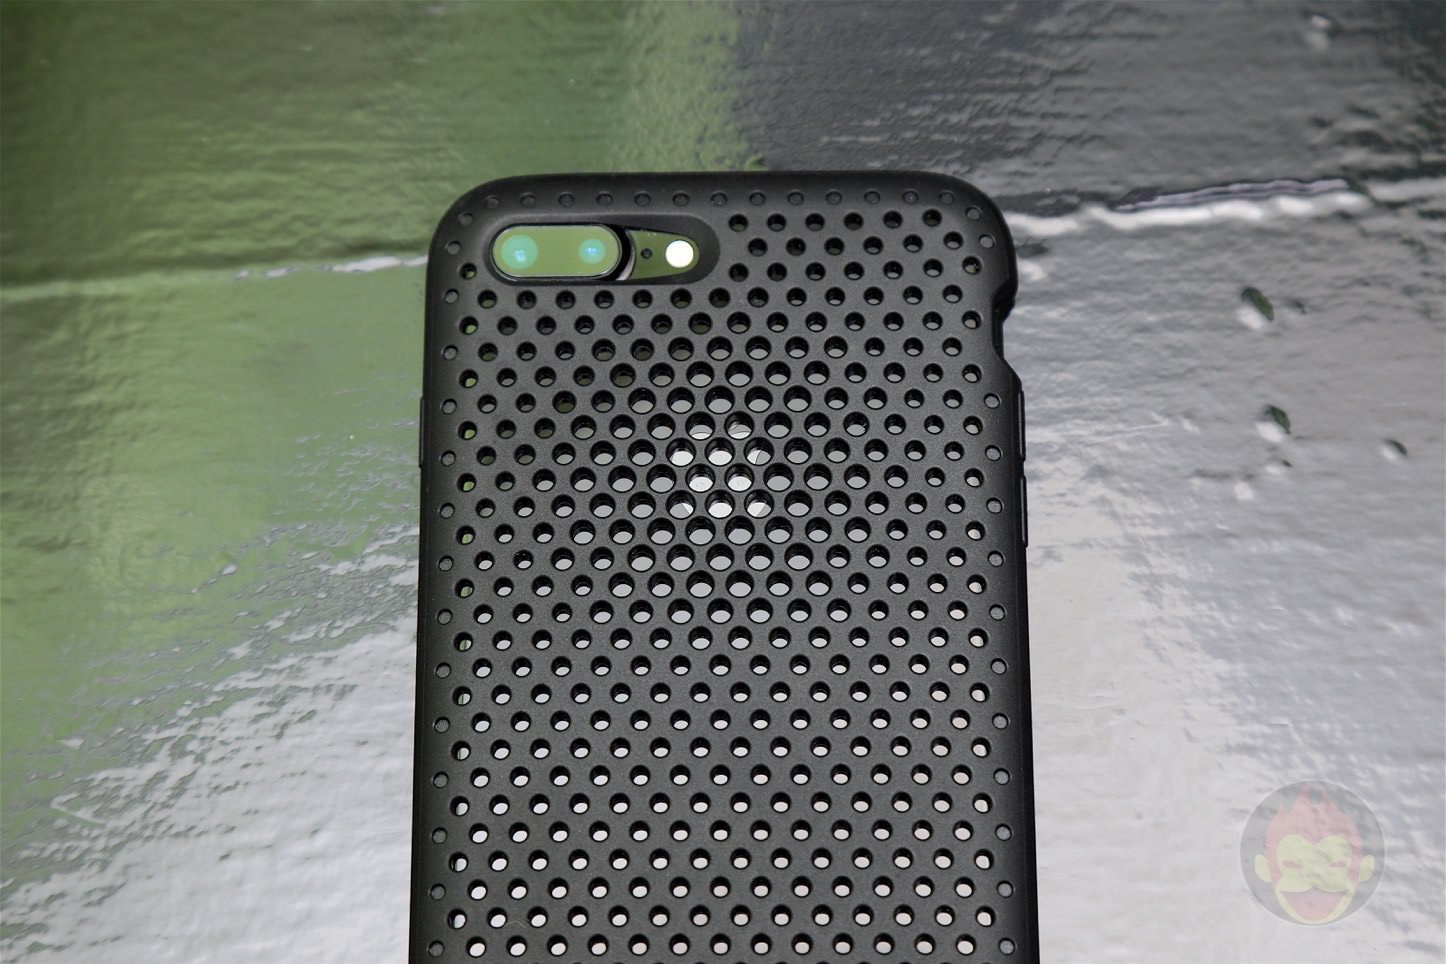 AndMesh-Mesh-Case-for-iPhone-7-Plus-02.jpg